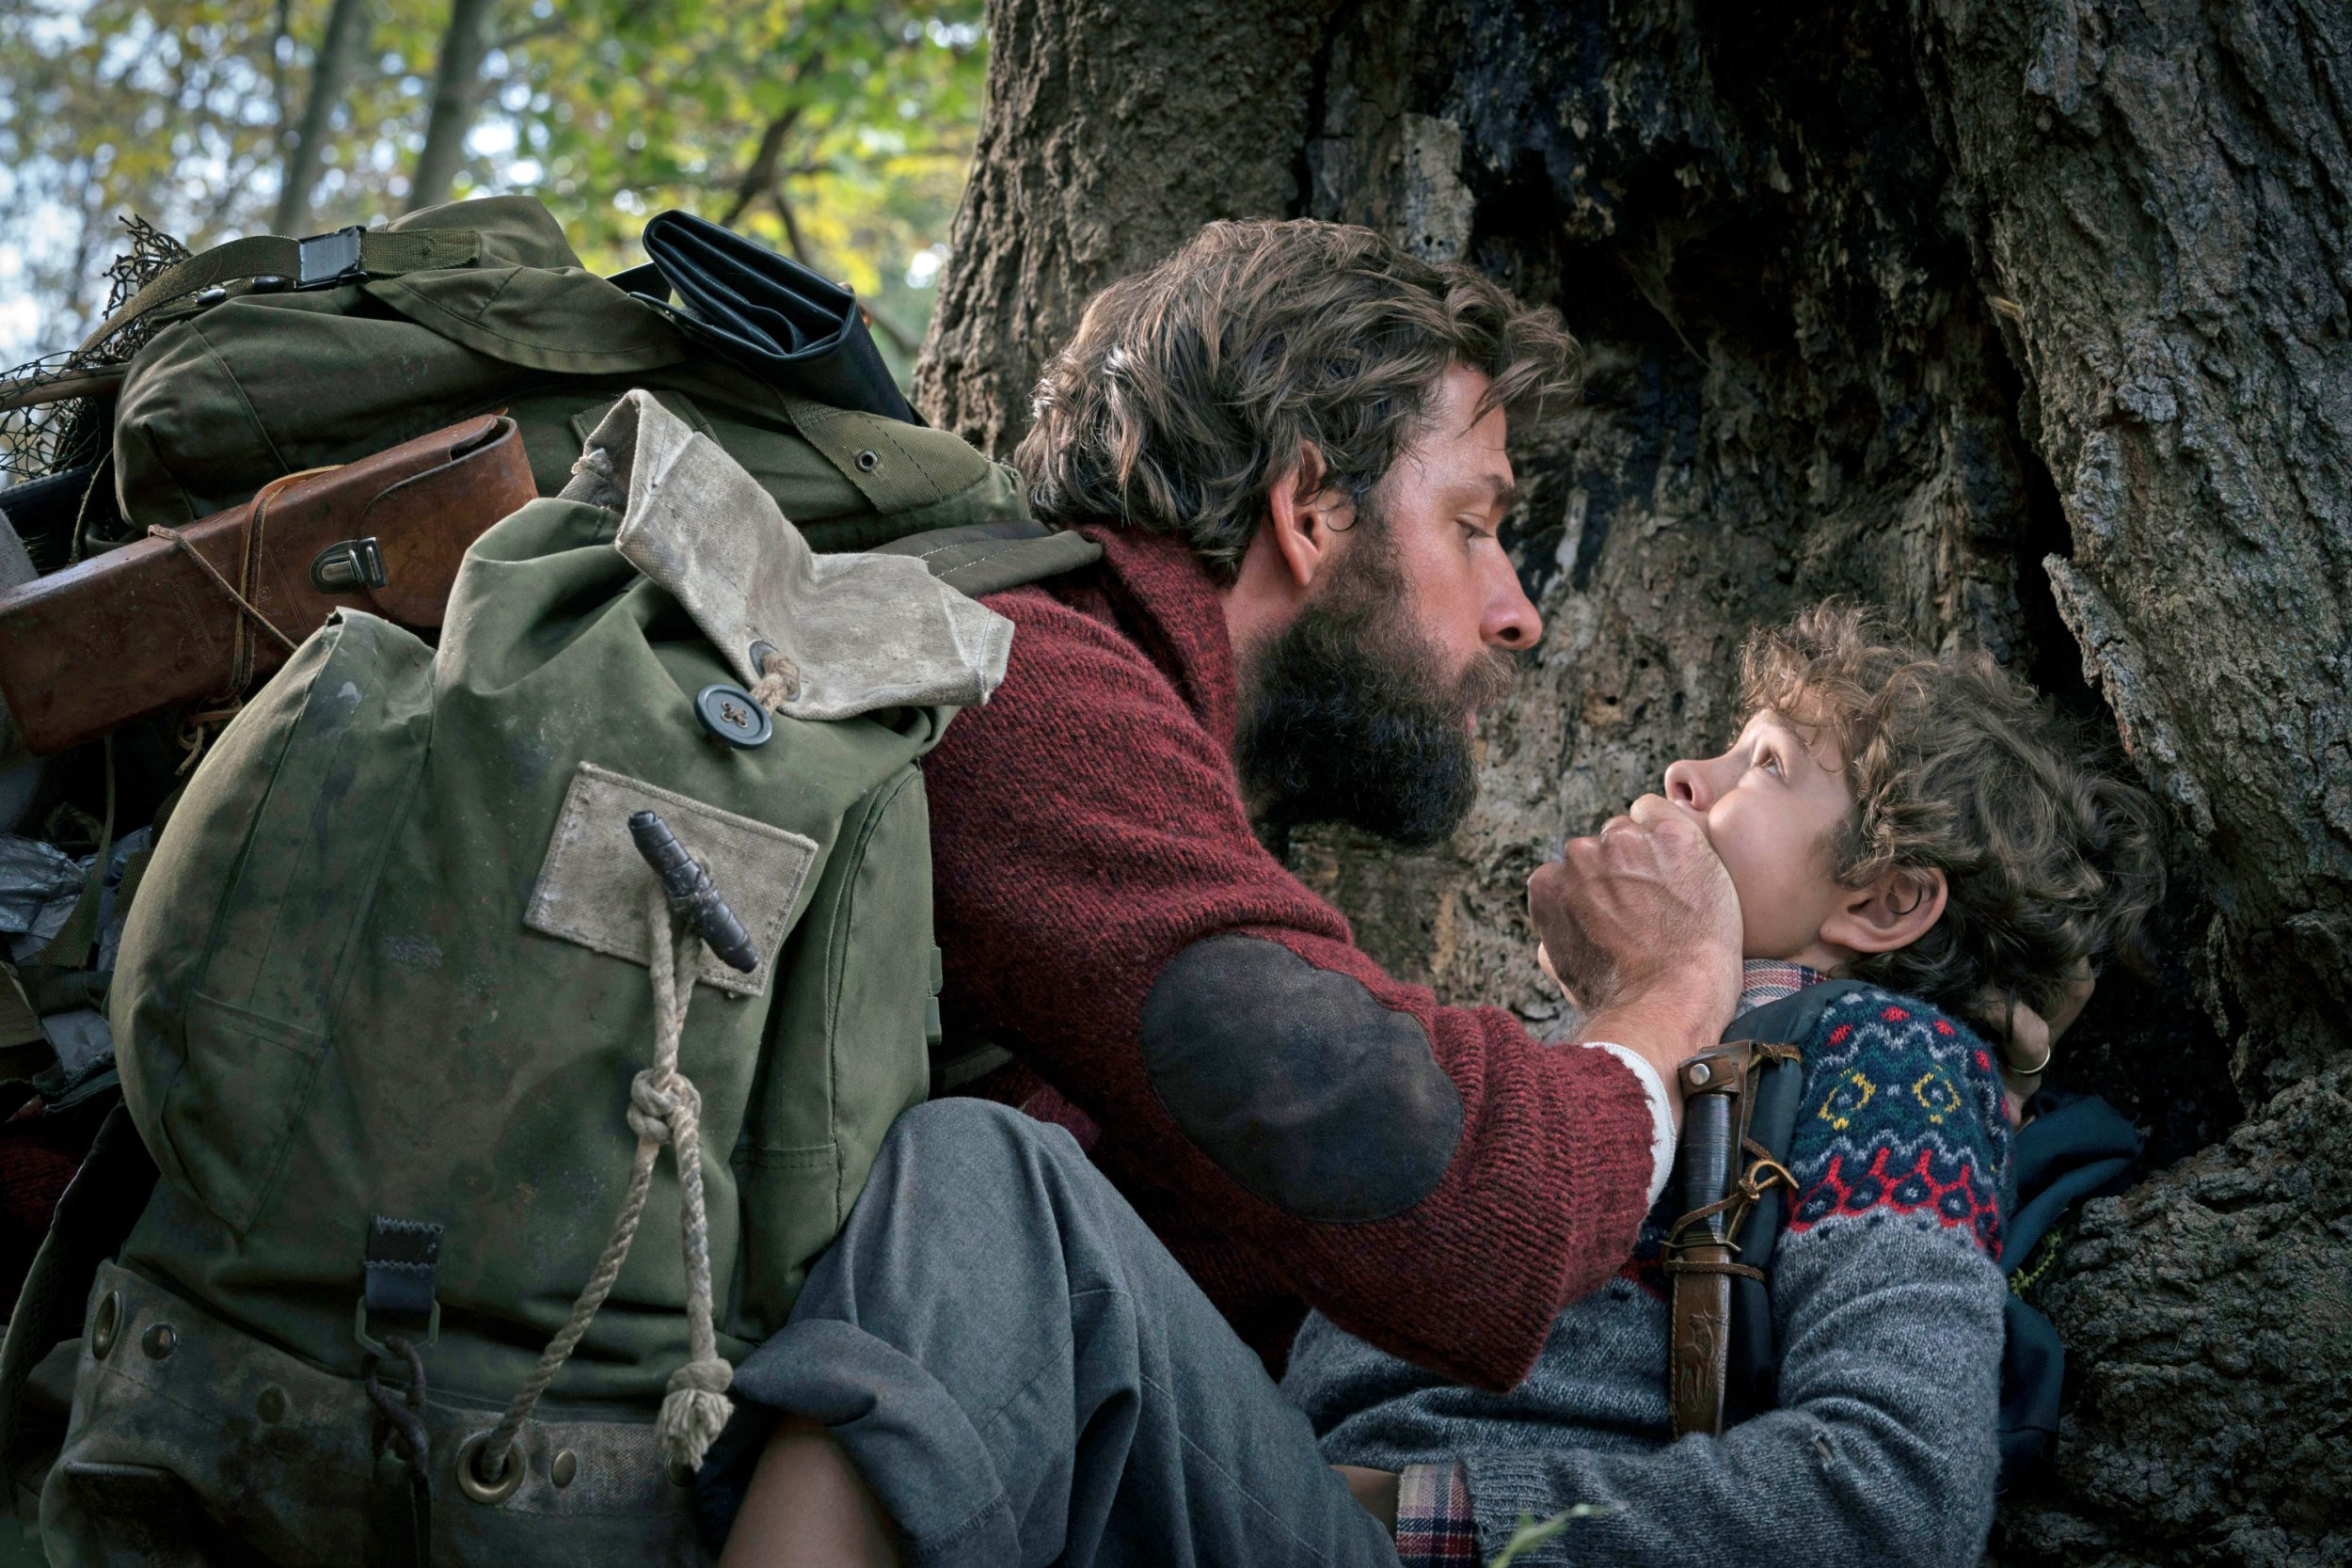 John Krasinski teases A Quiet Place sequel as he reveals he was 'mind-tricked' into writing it